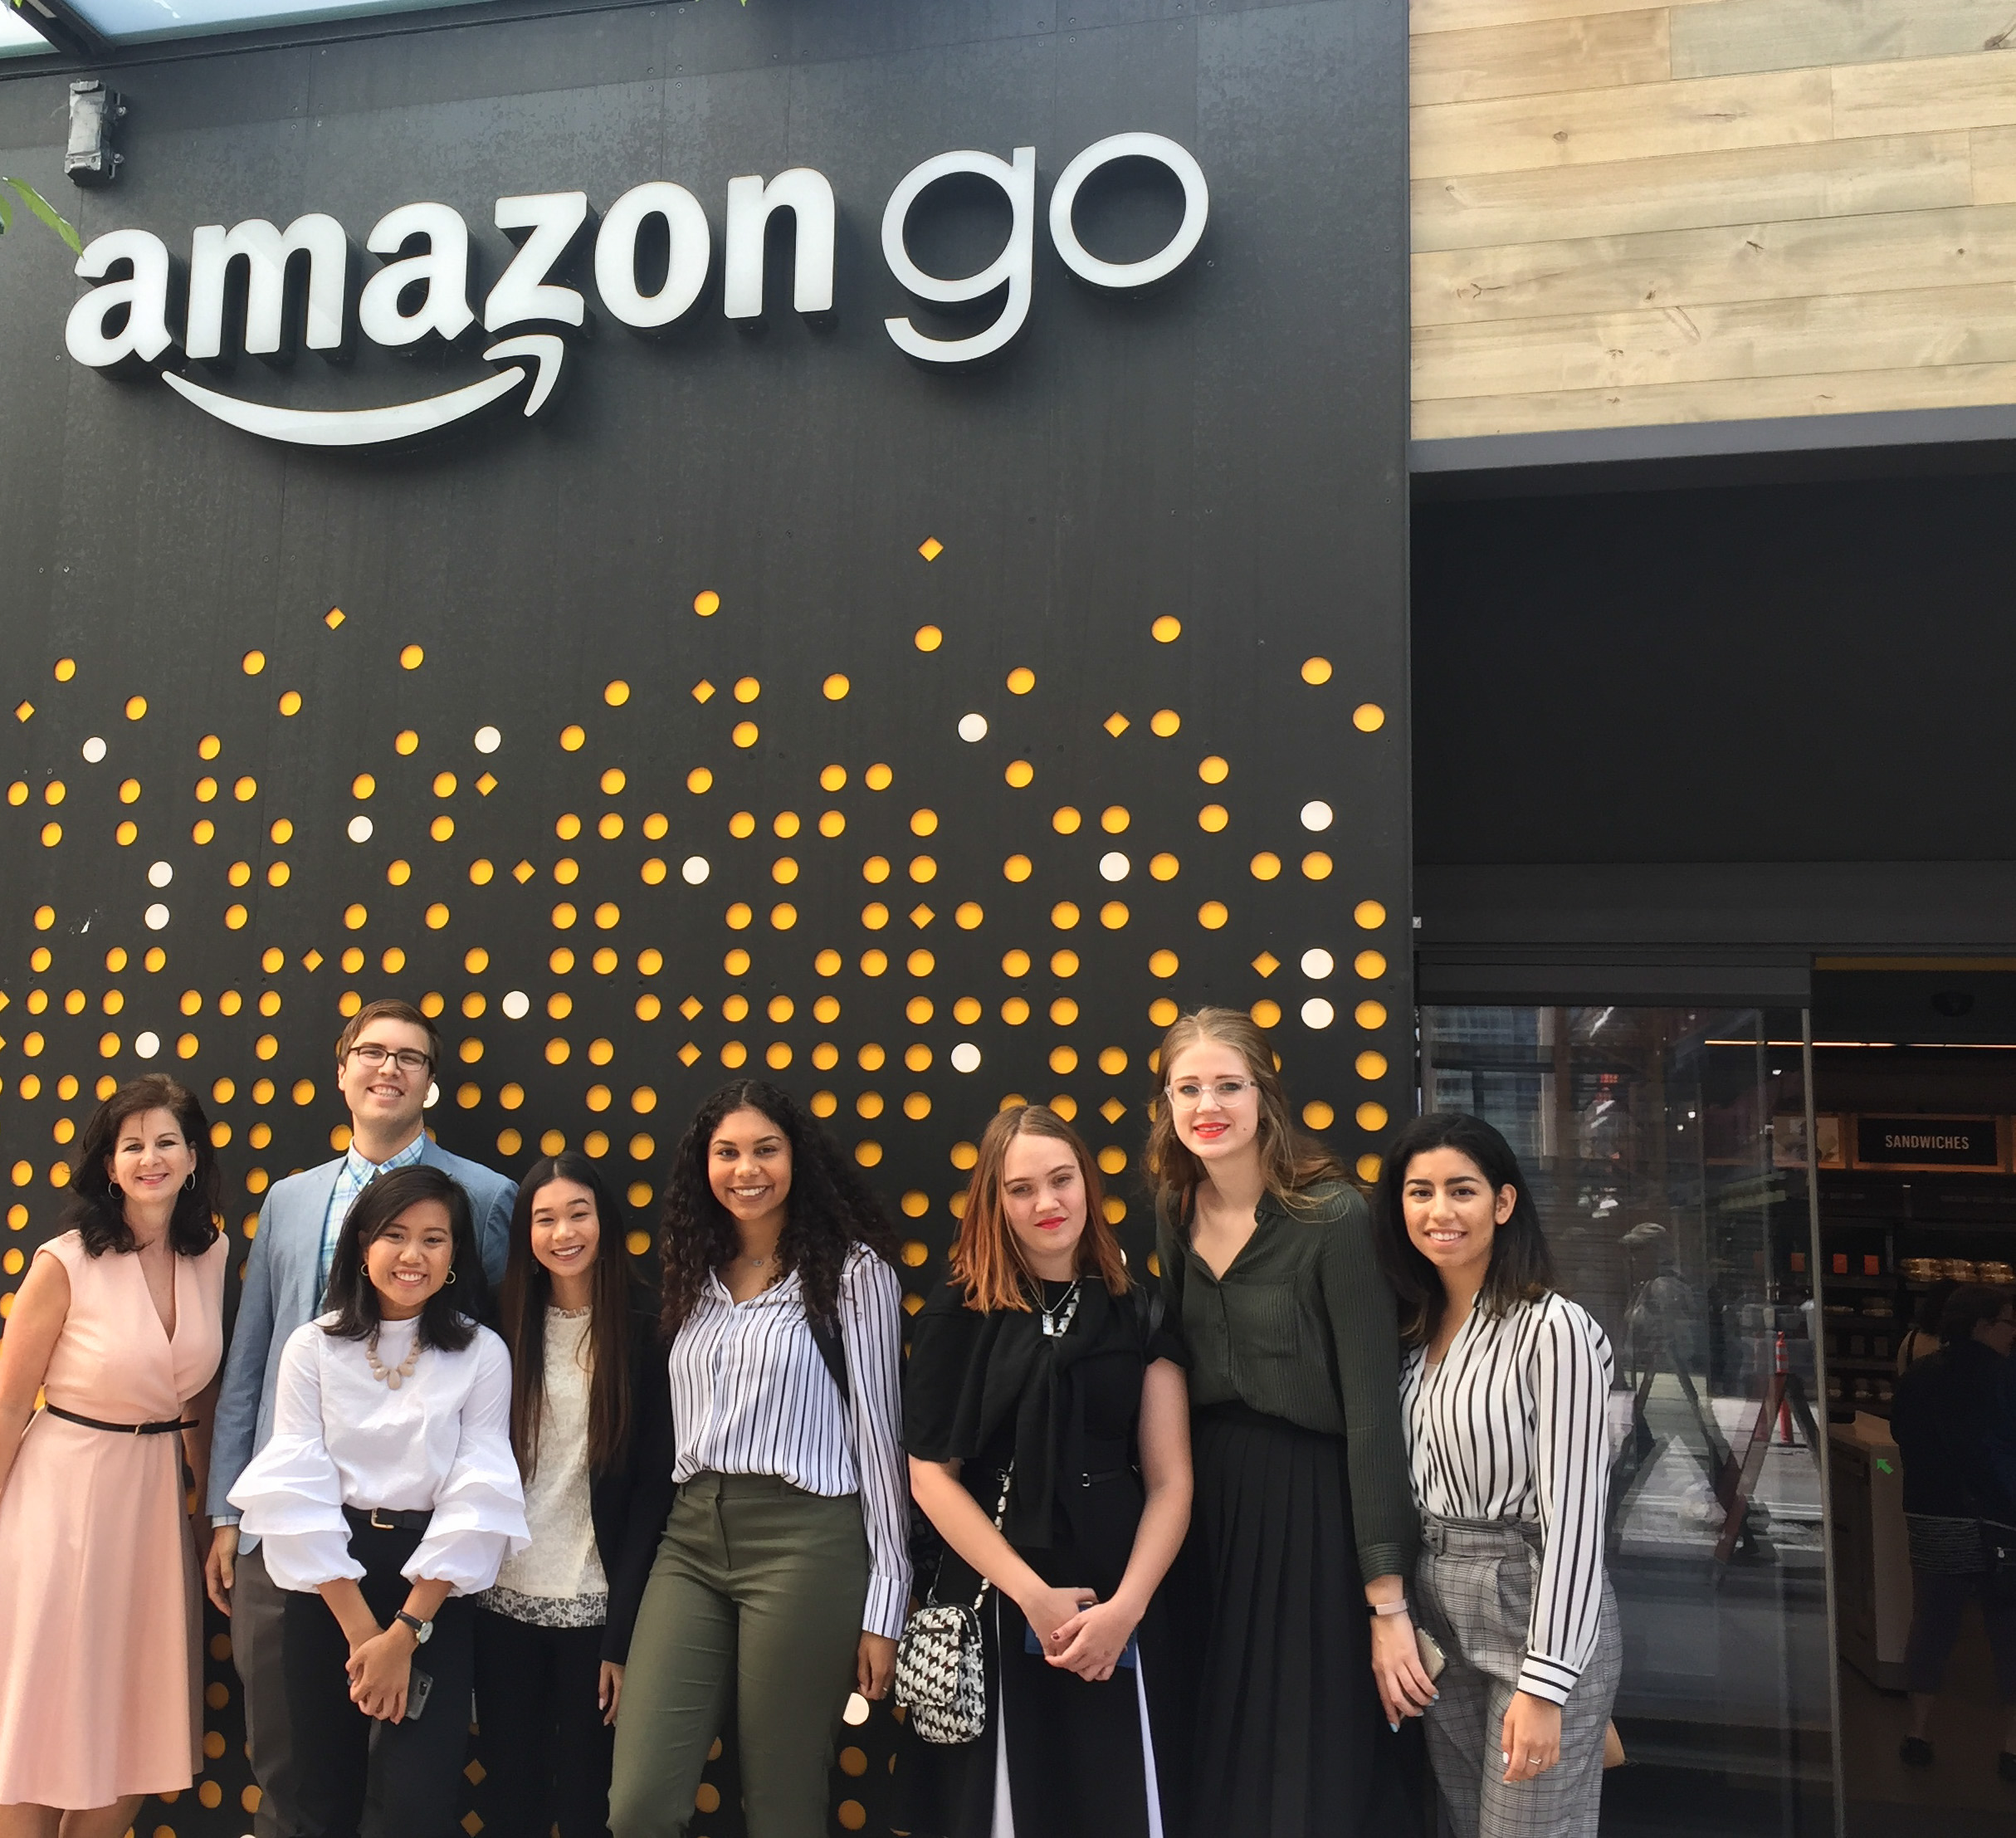 University of North Texas students and Linda Mihalick visiting Amazon headquarters in Seattle